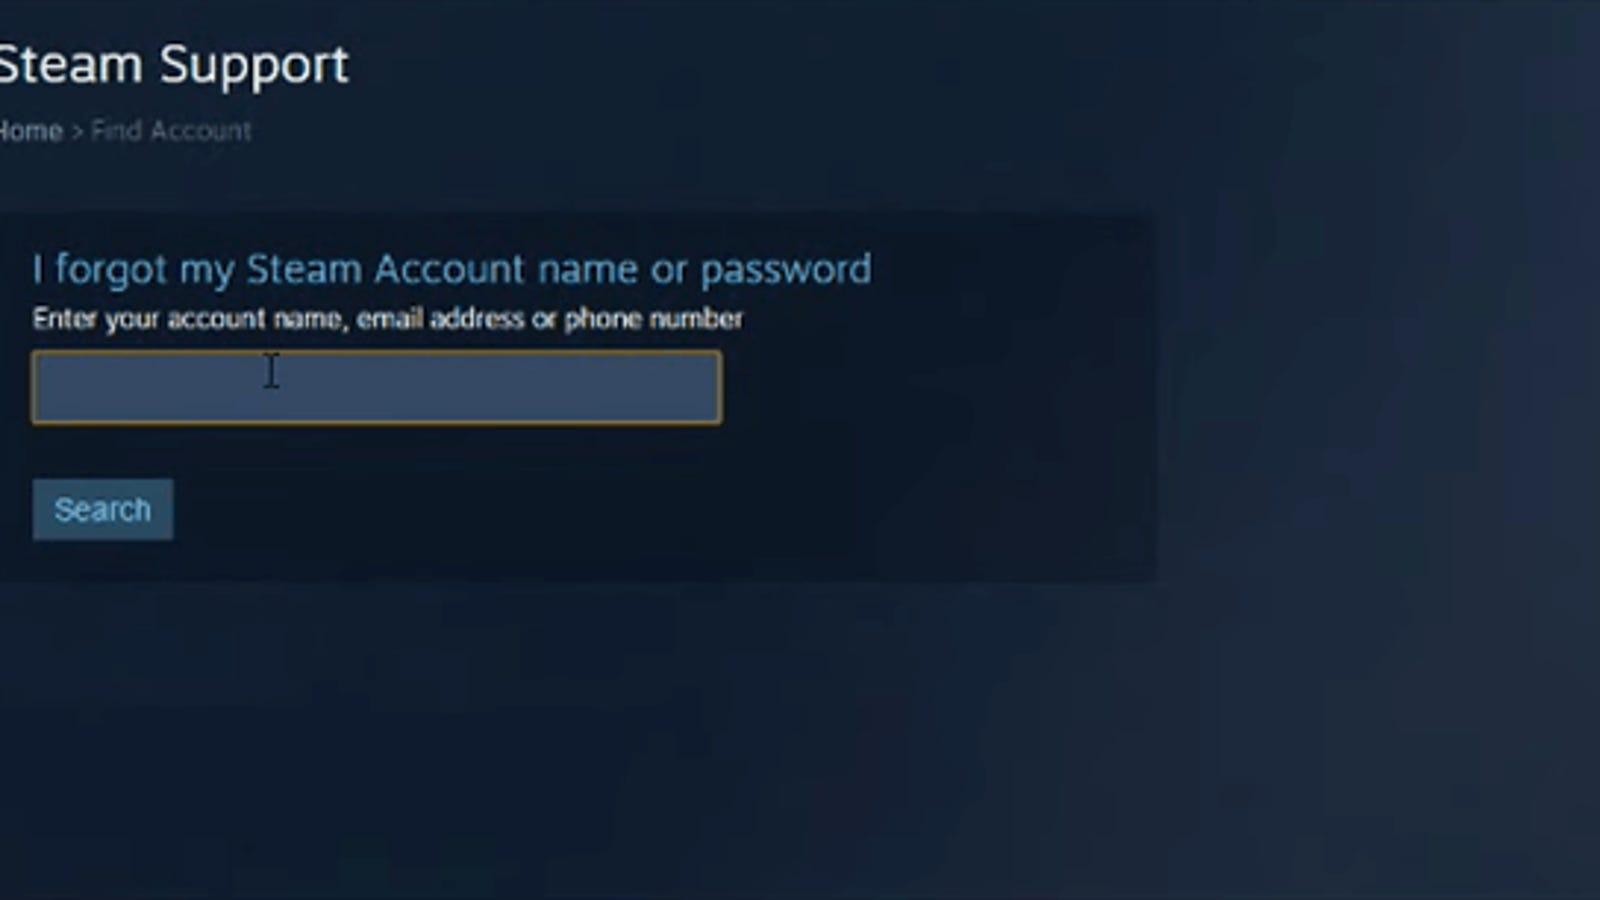 Some Steam Accounts Hijacked Following Security Lapse